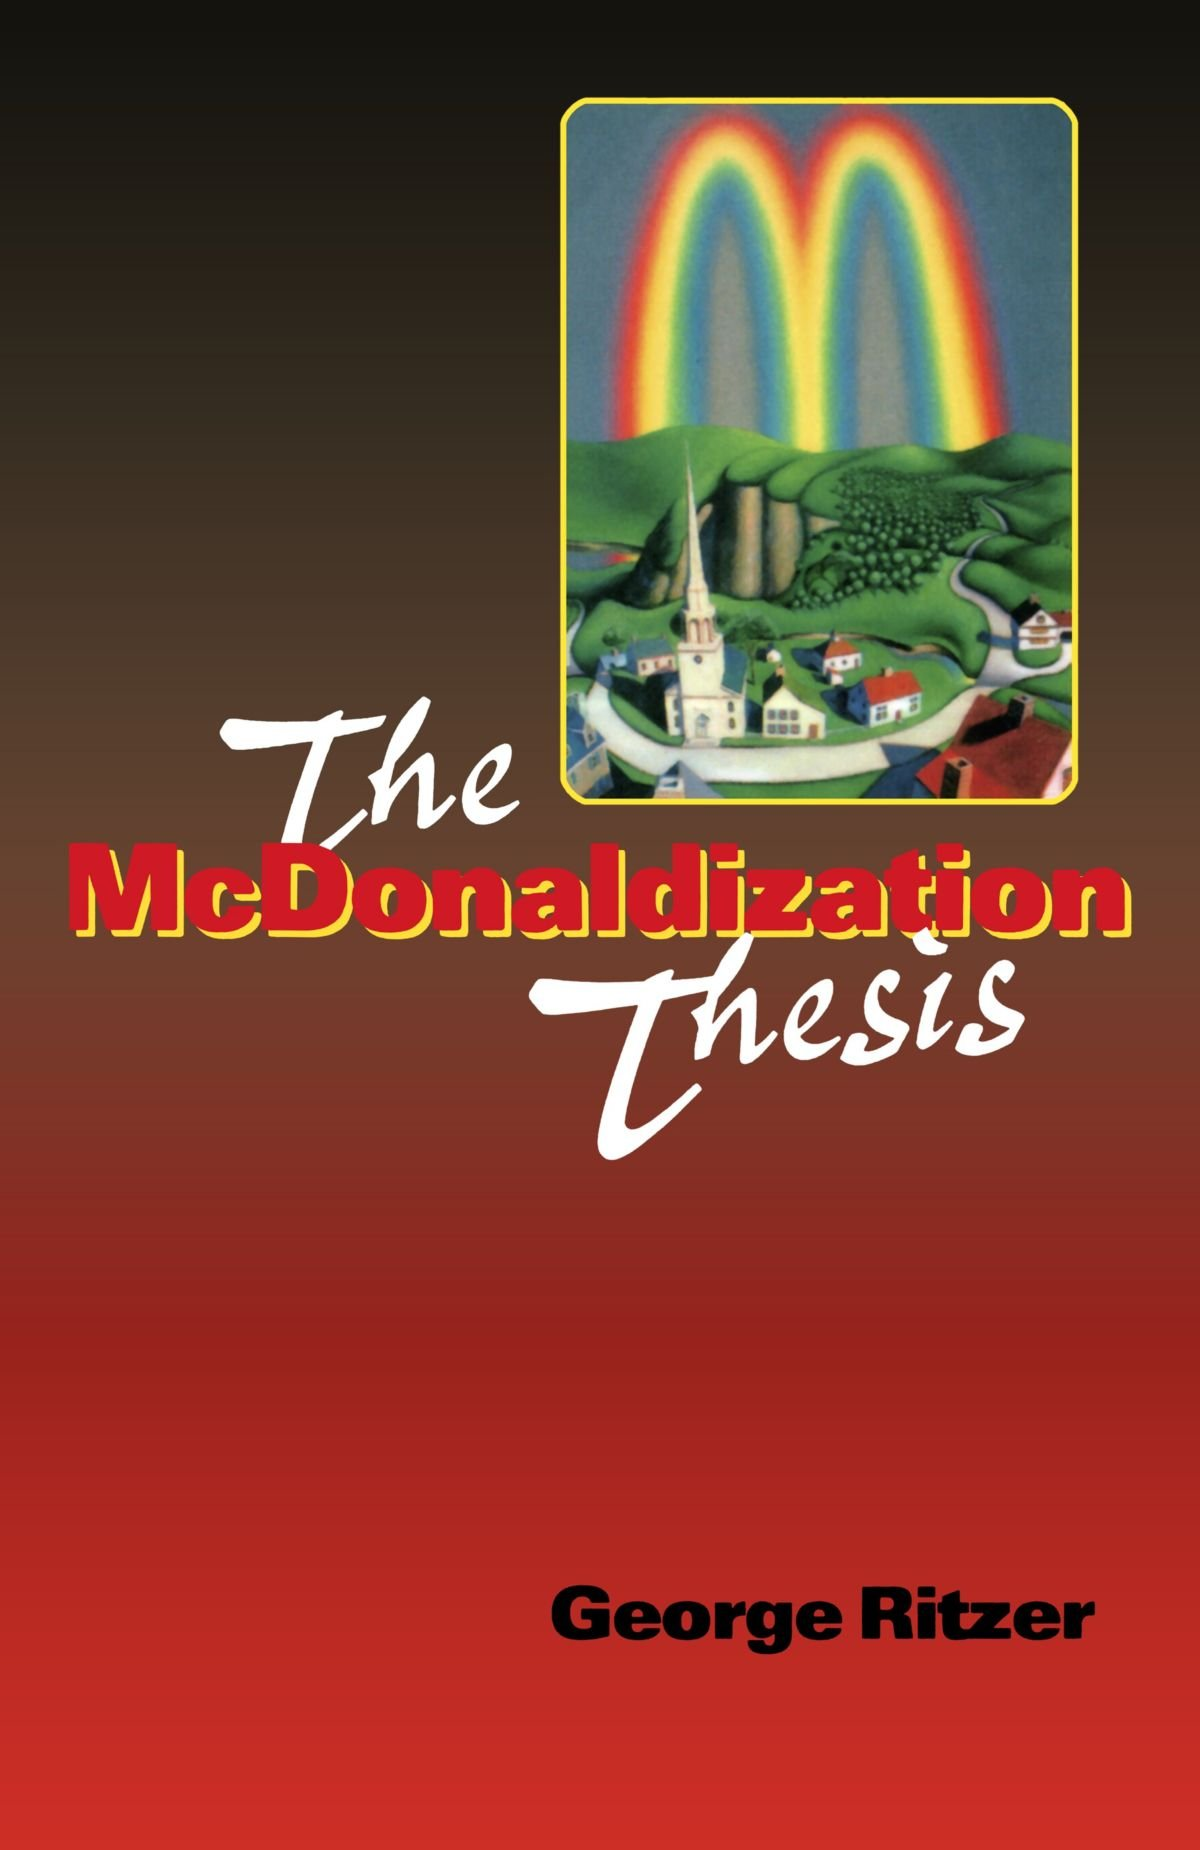 the mcdonaldization thesis is expansion inevitable george ritzer Mcdonaldization is a term used by sociologist george ritzer in his book the mcdonaldization mcdonaldization thesis in cultural as this expansion.